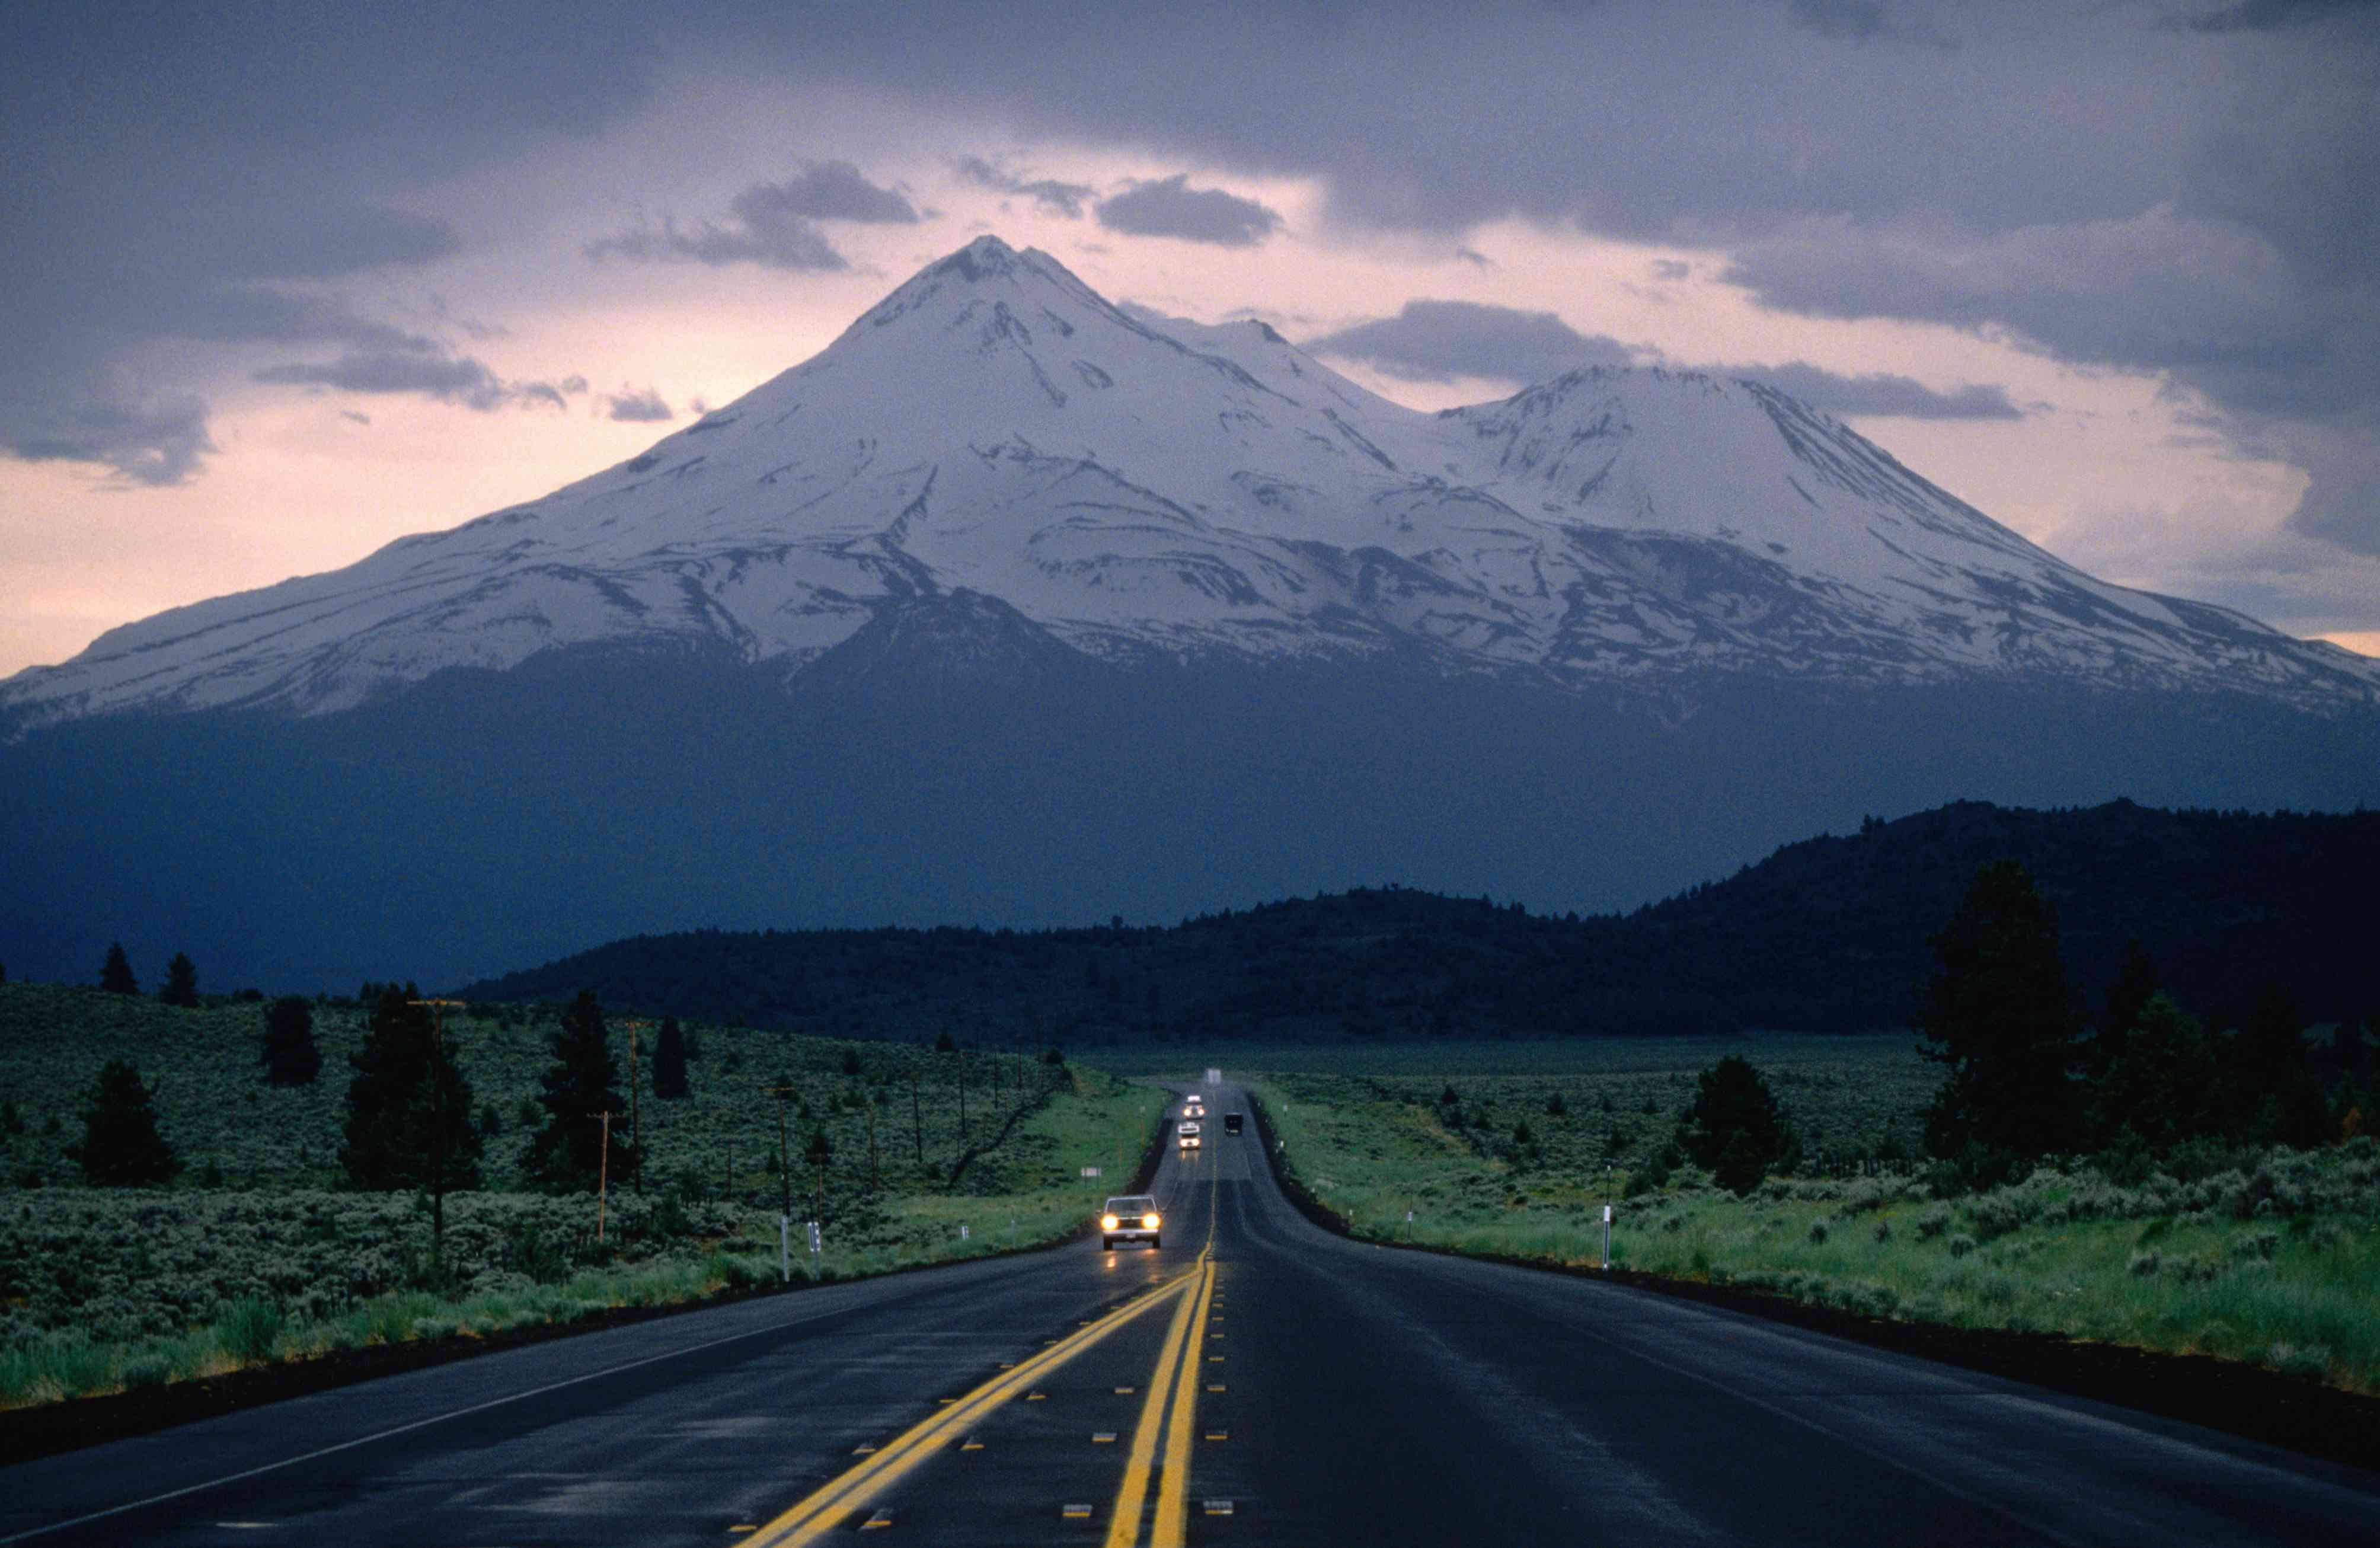 Mt Shasta looming over Highway 97 at dusk